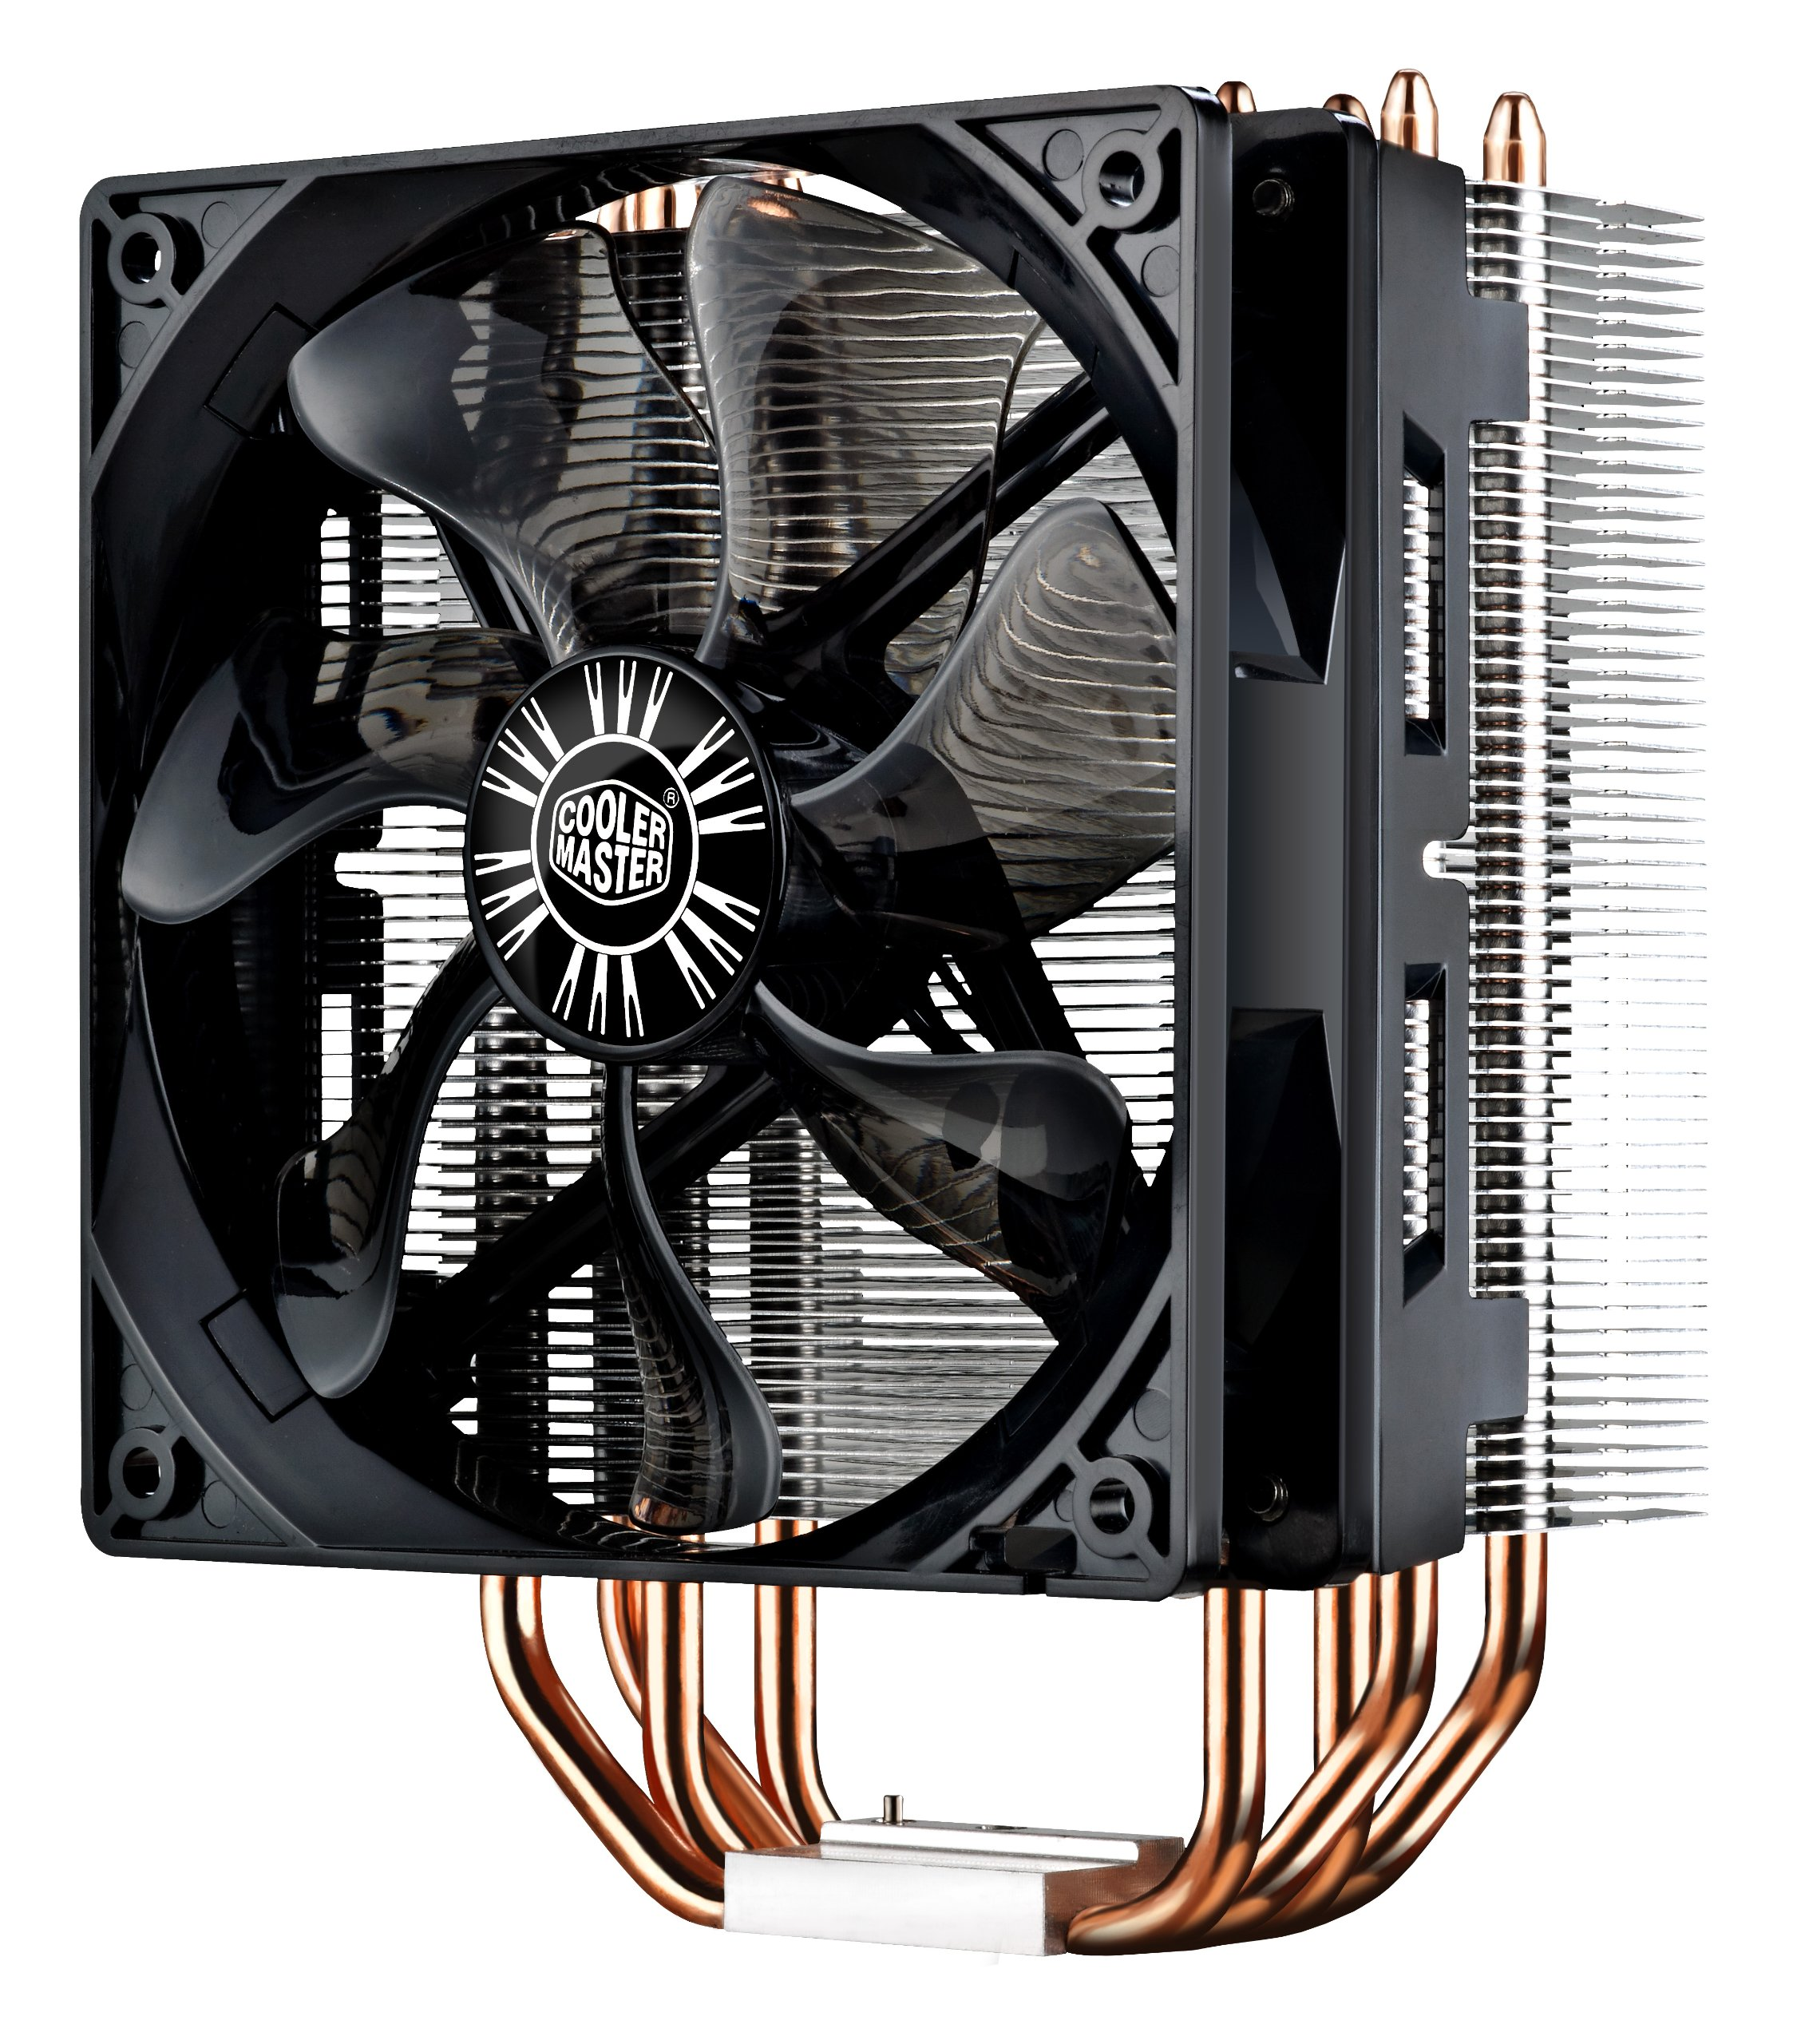 Cooler Master Hyper RR-212E-20PK-R2 LED CPU Cooler with PWM Fan, Four Direct Contact Heat Pipes by Cooler Master